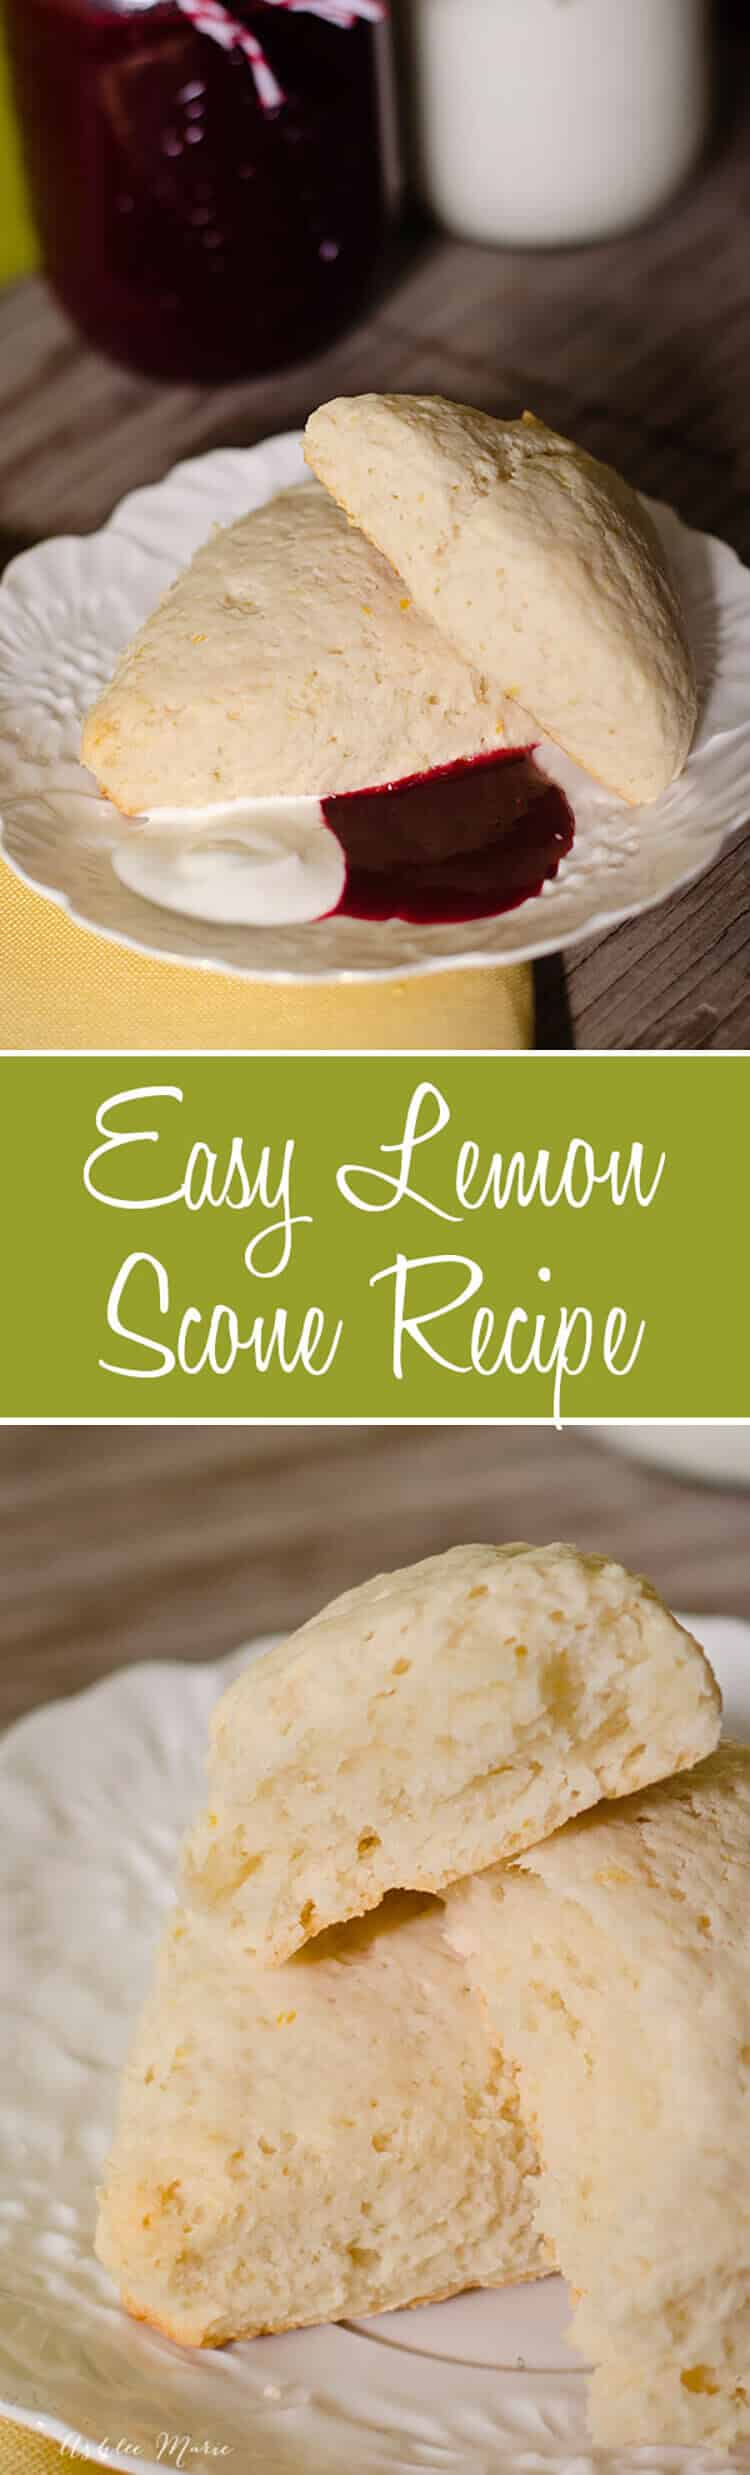 easy to make and oh so delicious; these lemon scones make the house smell divine and the flavor and texture are so good; a copycat recipe from epcot at disneyworld